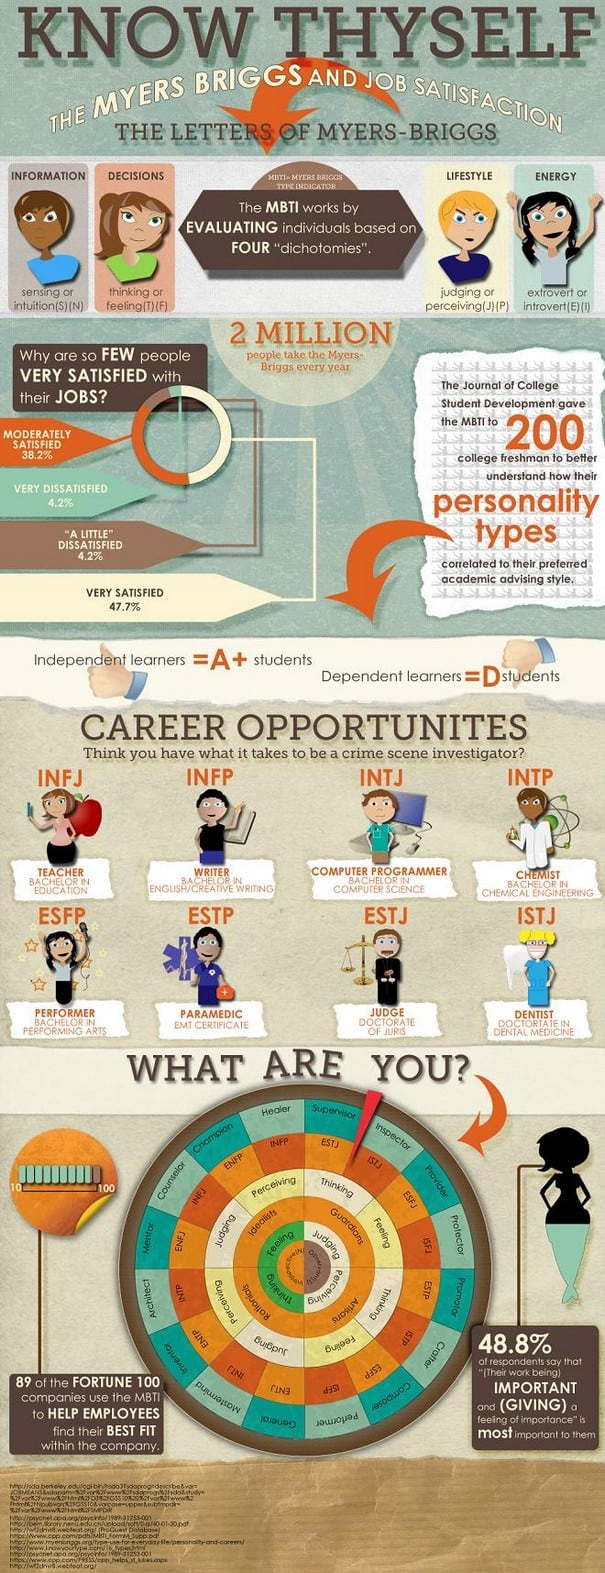 Myers Briggs and Job Satisfaction